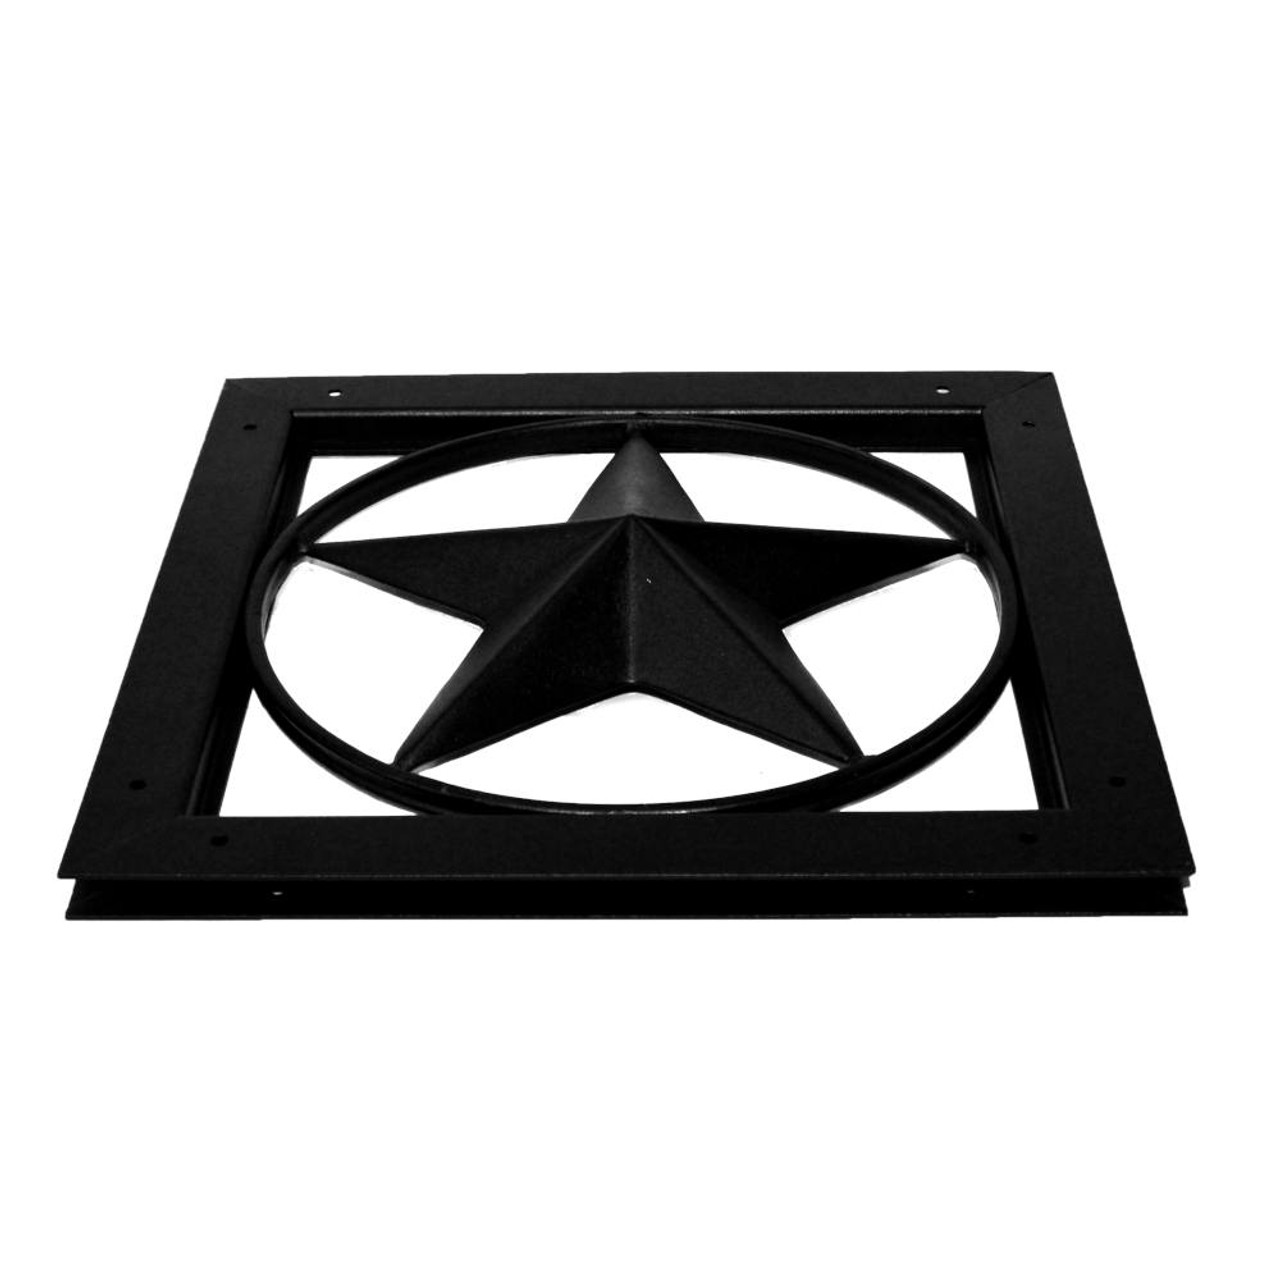 Ornamental Star Accent from OZCO OWT Hardware